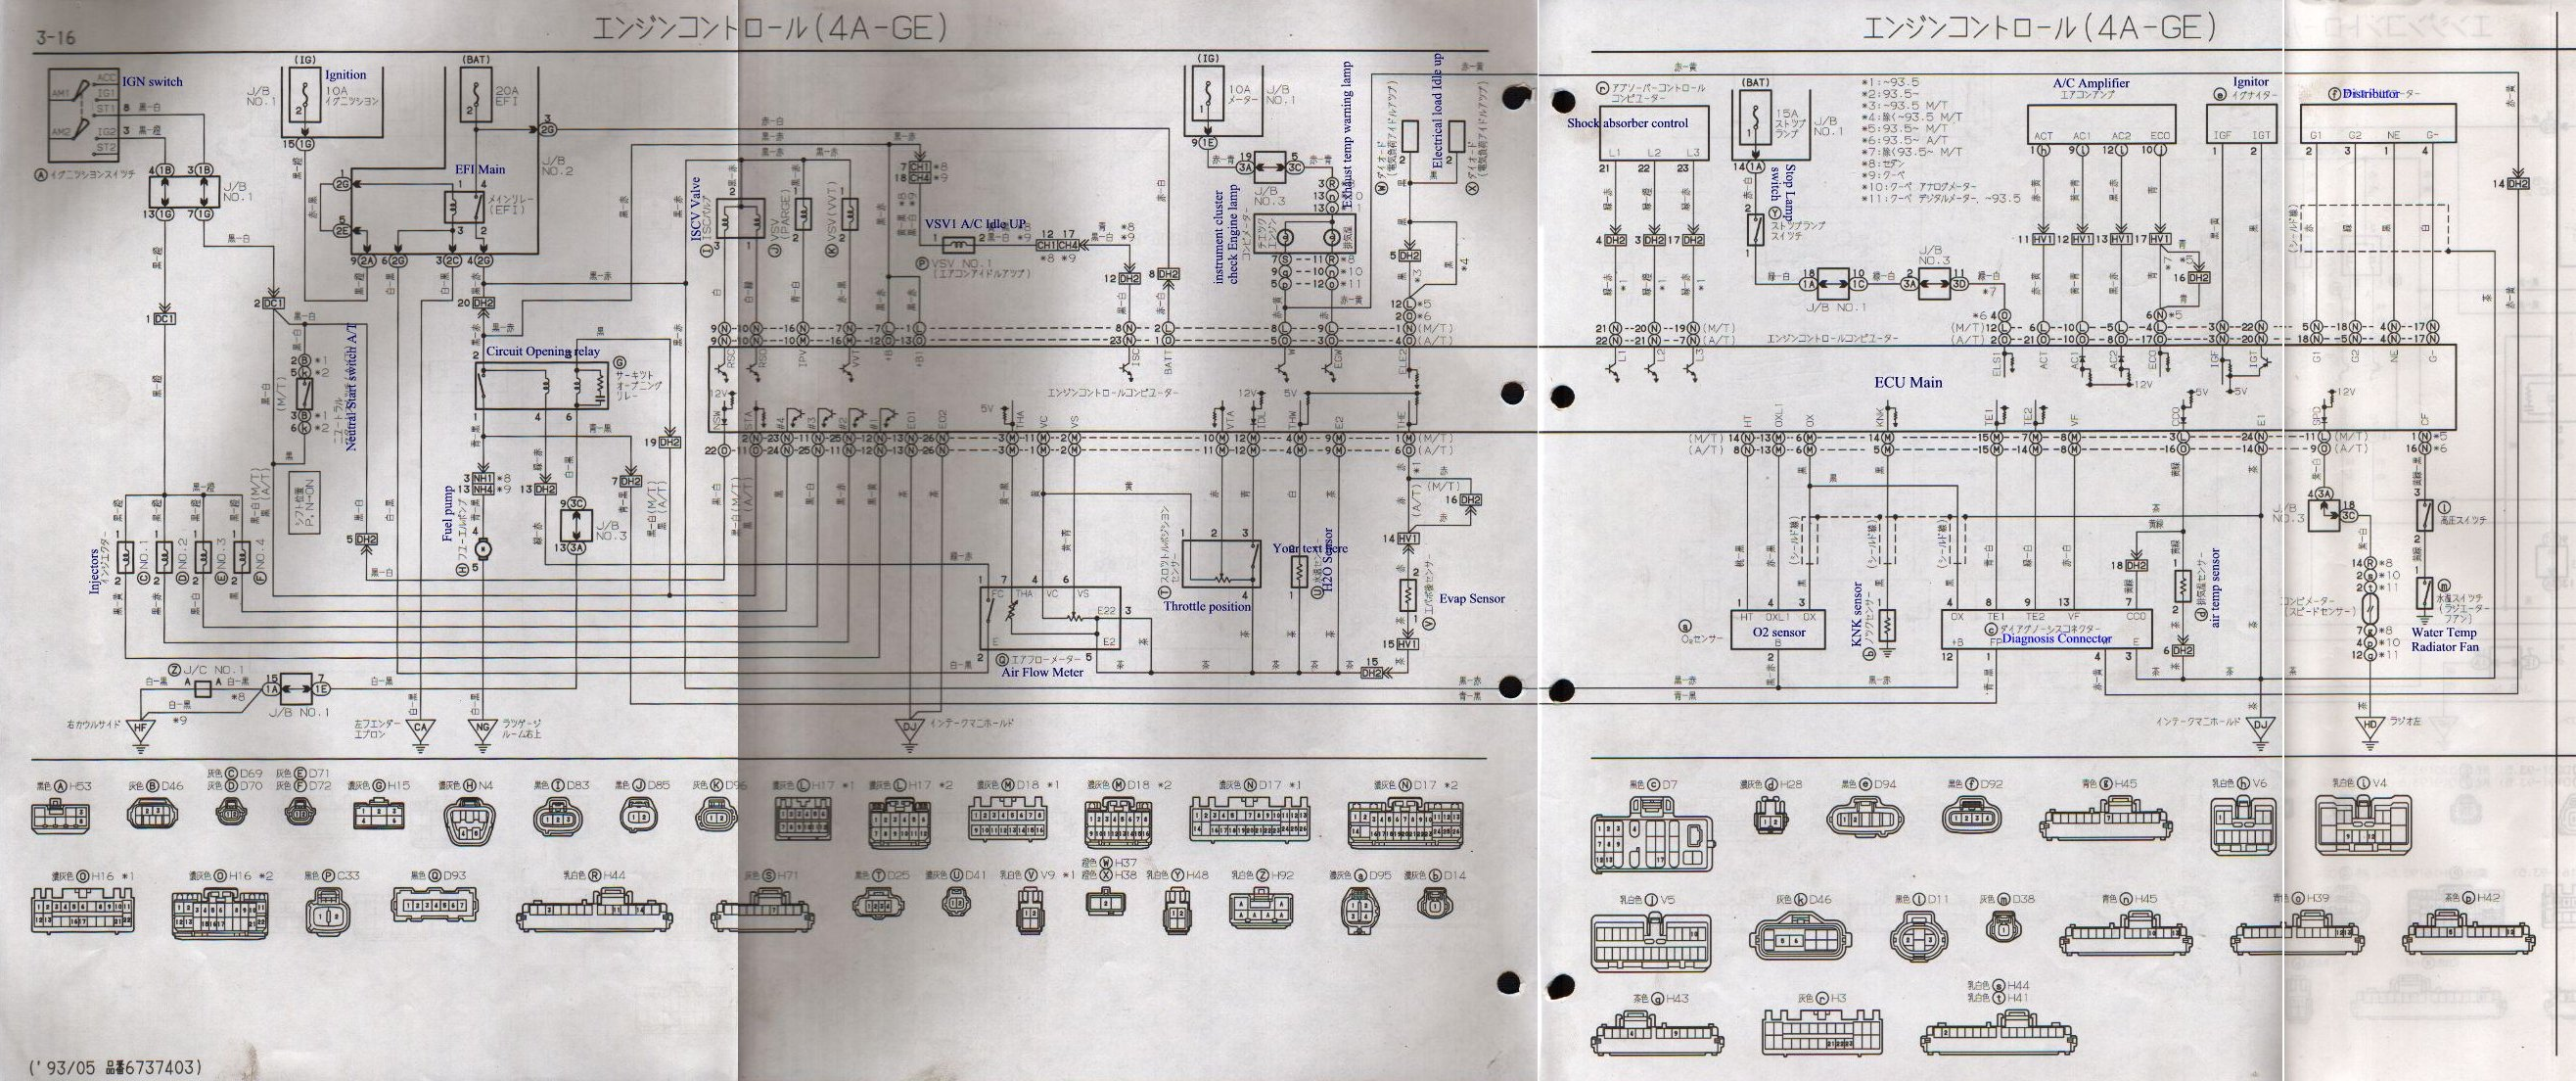 silvertop_diagram connector pinout and schematic toyota nation forum toyota car ae111 fuse box diagram at mifinder.co